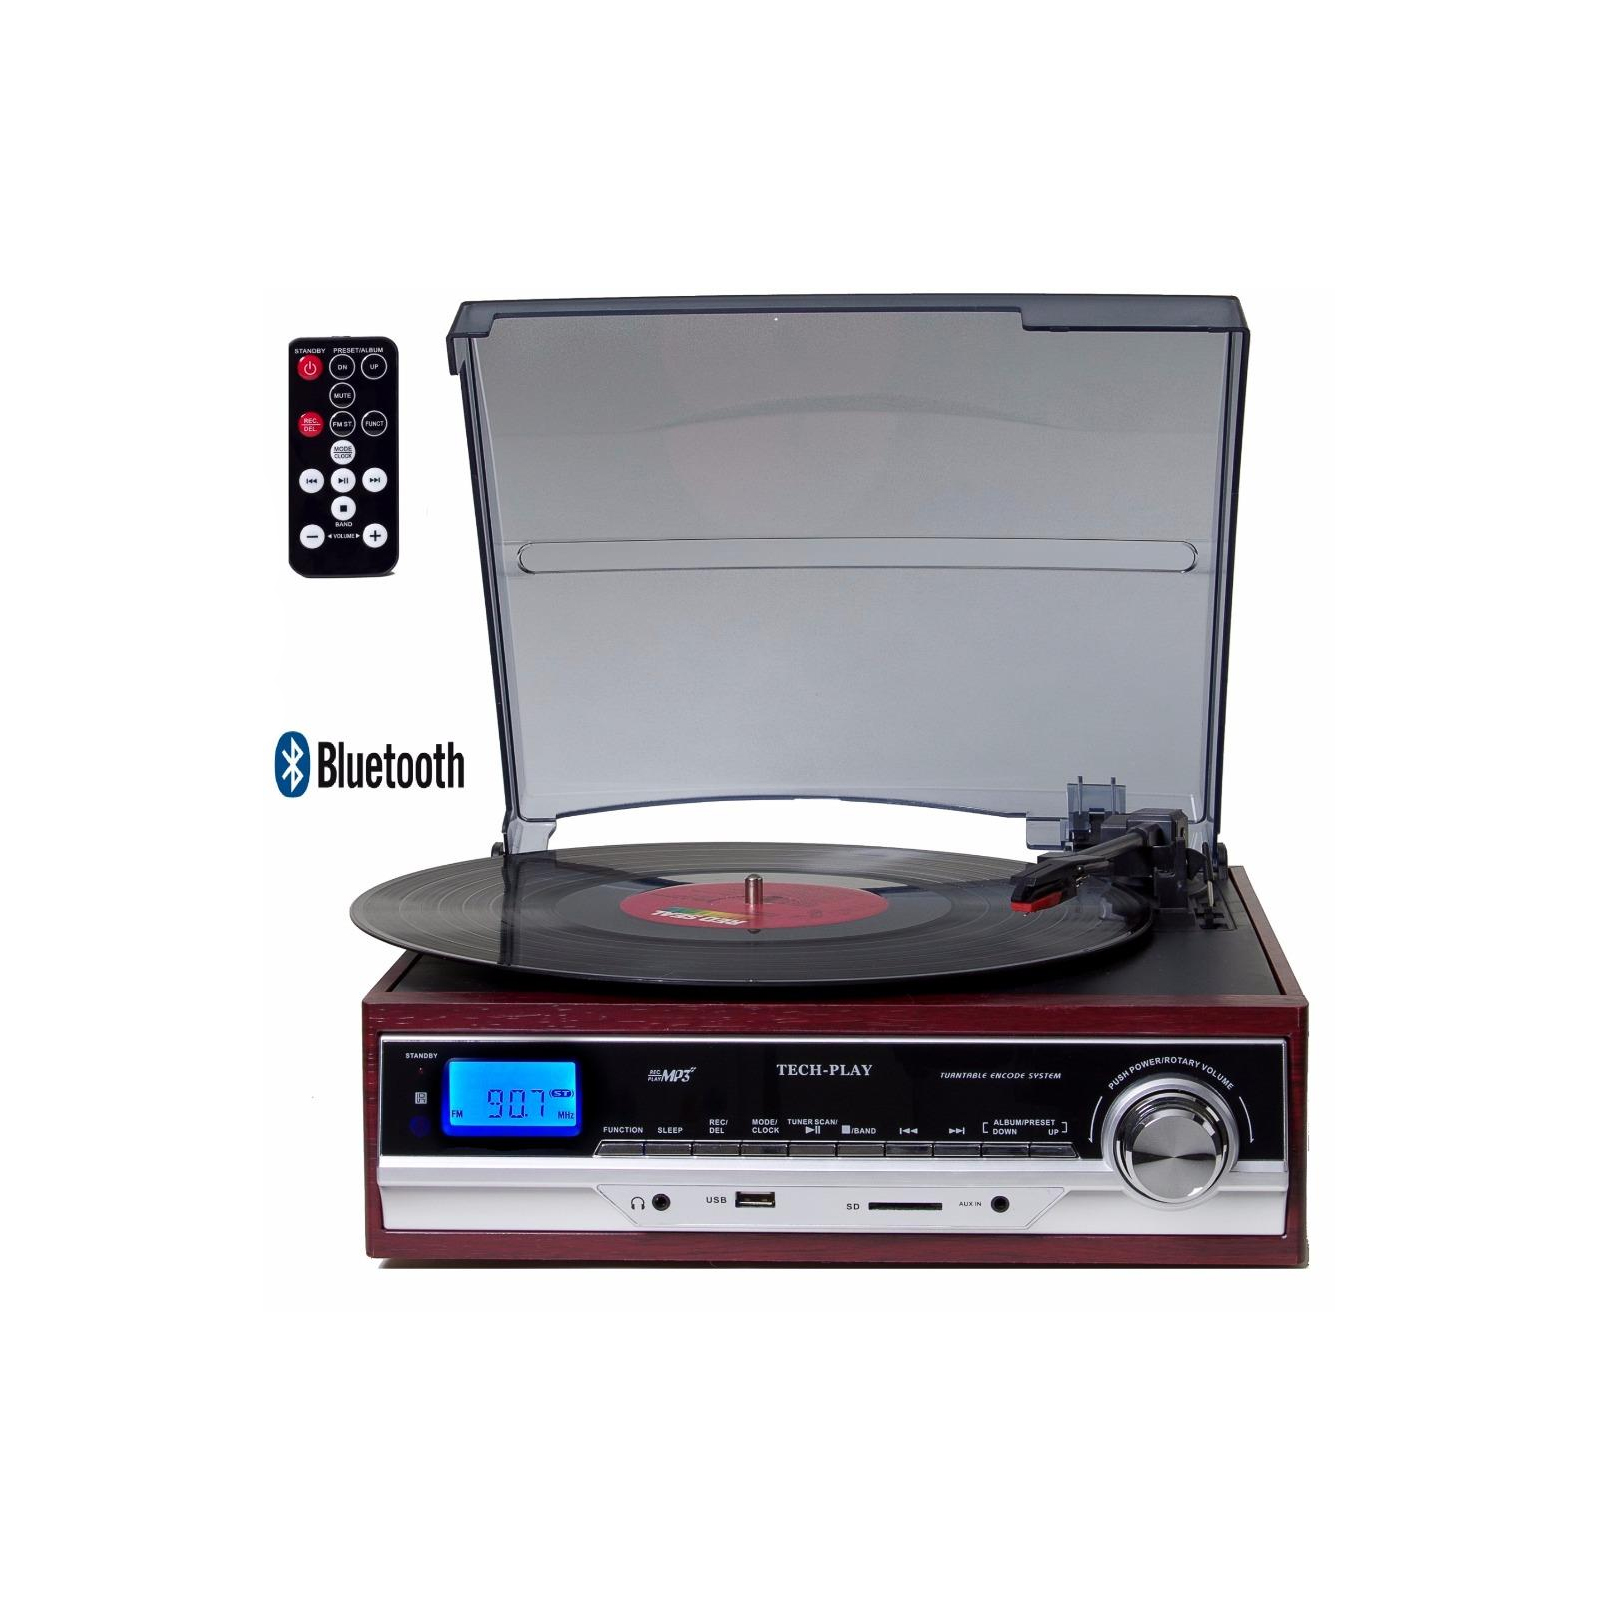 TechPlay 3-Speed Turntable with BT, SD USB, MP3 Encoding System and AM/FM Stereo Radio